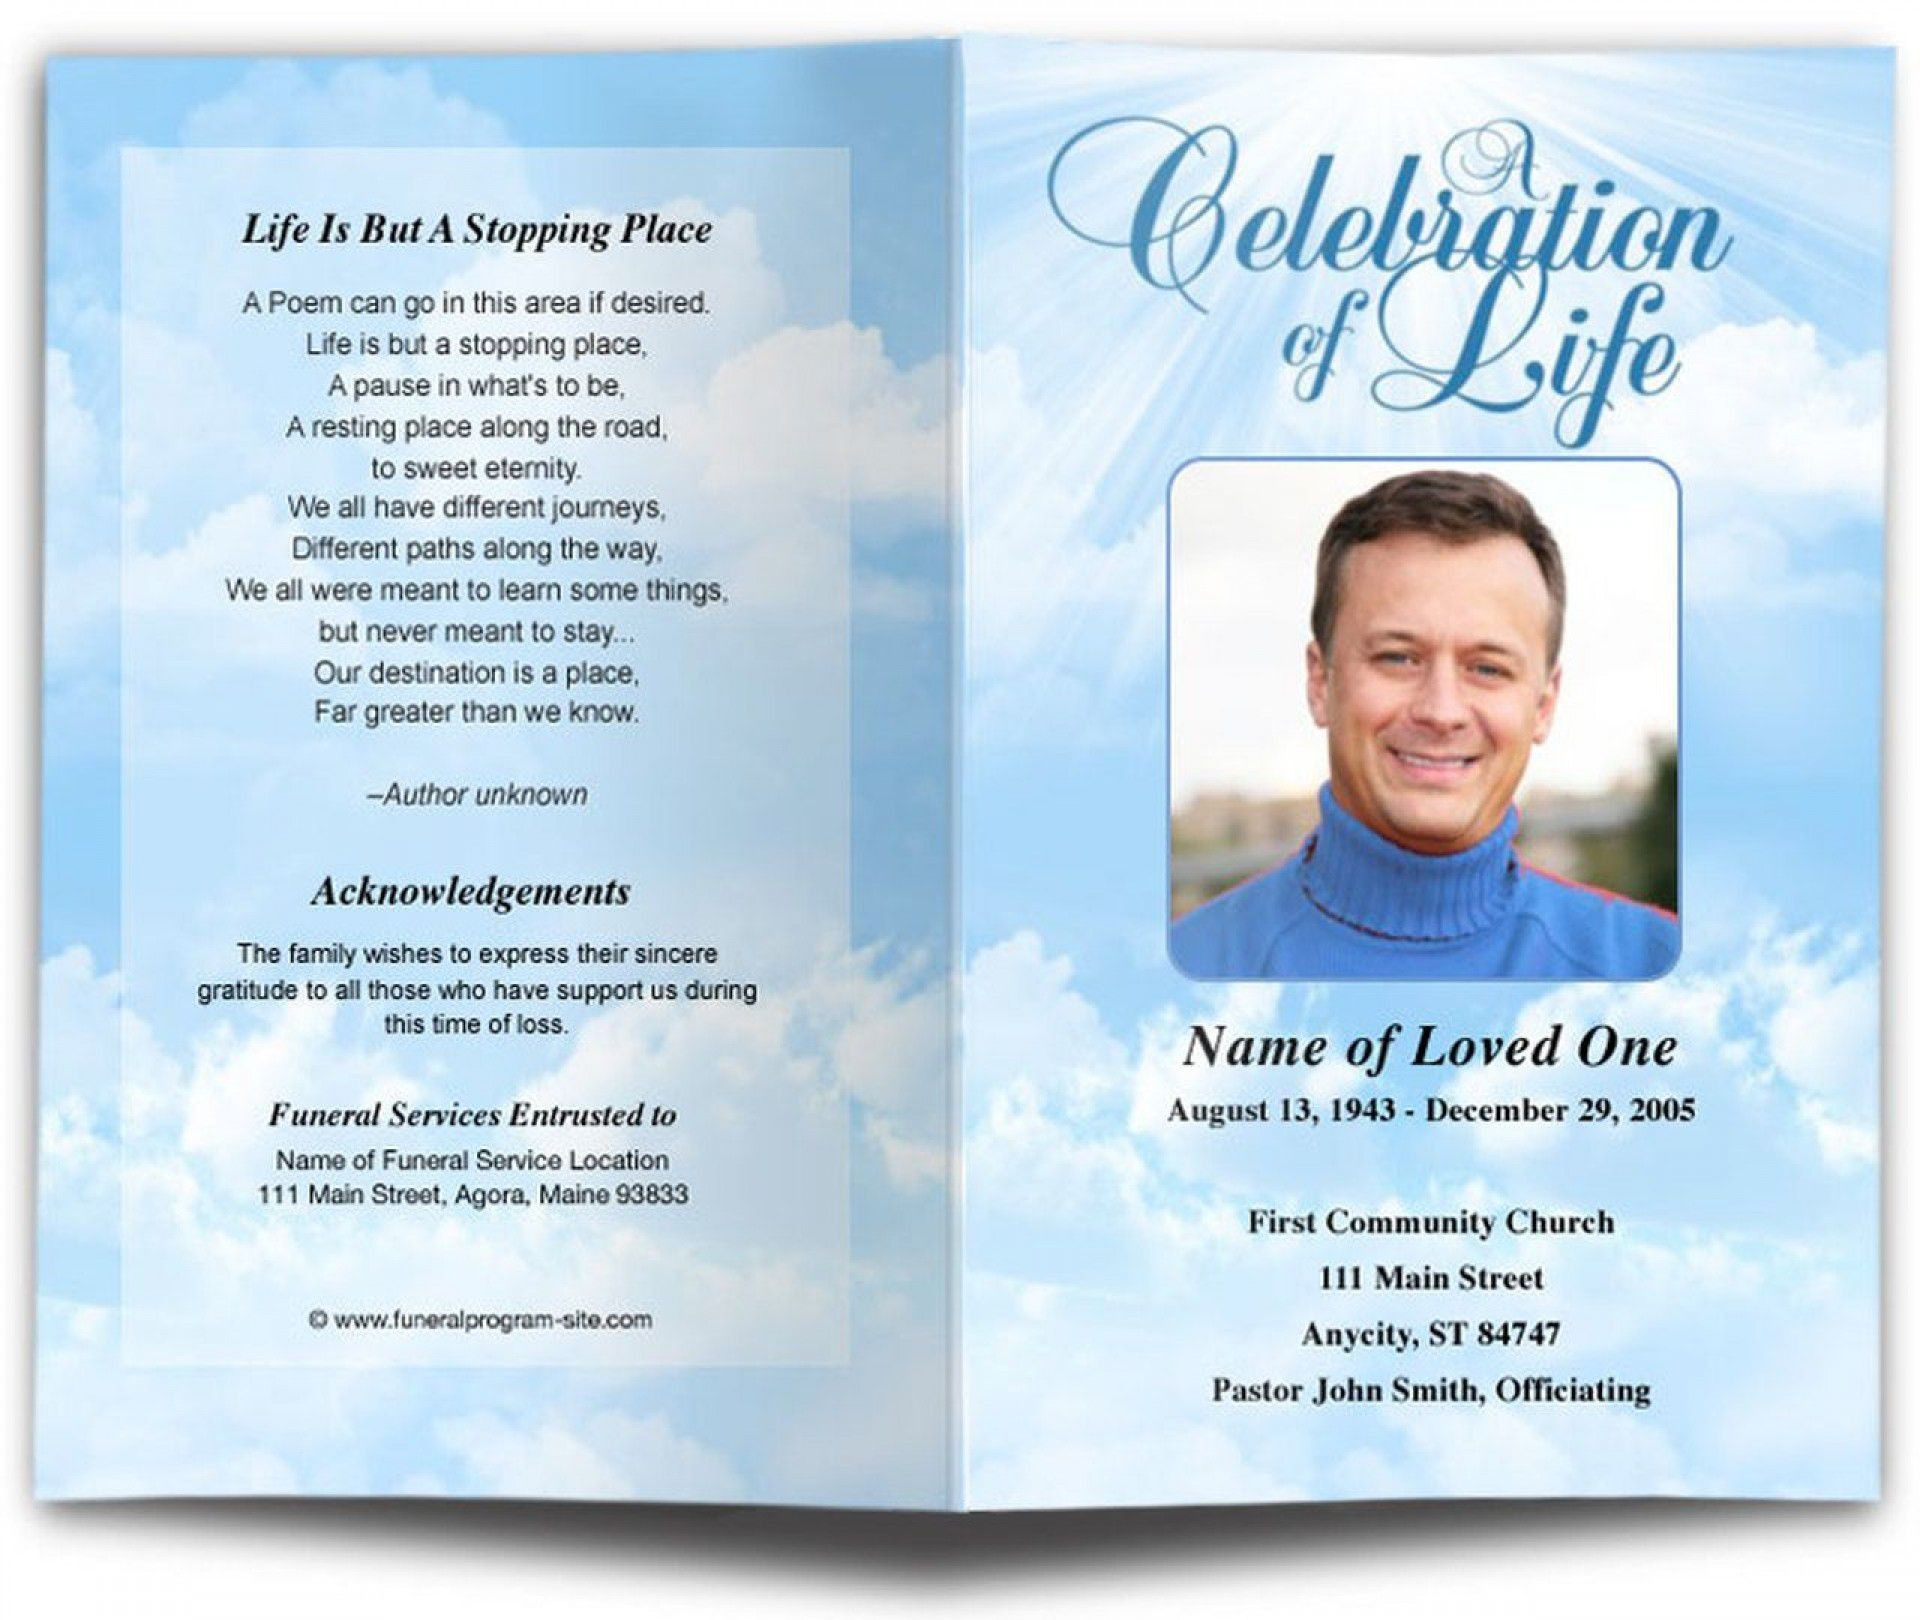 002 Awesome Free Download Template For Funeral Program Image 1920